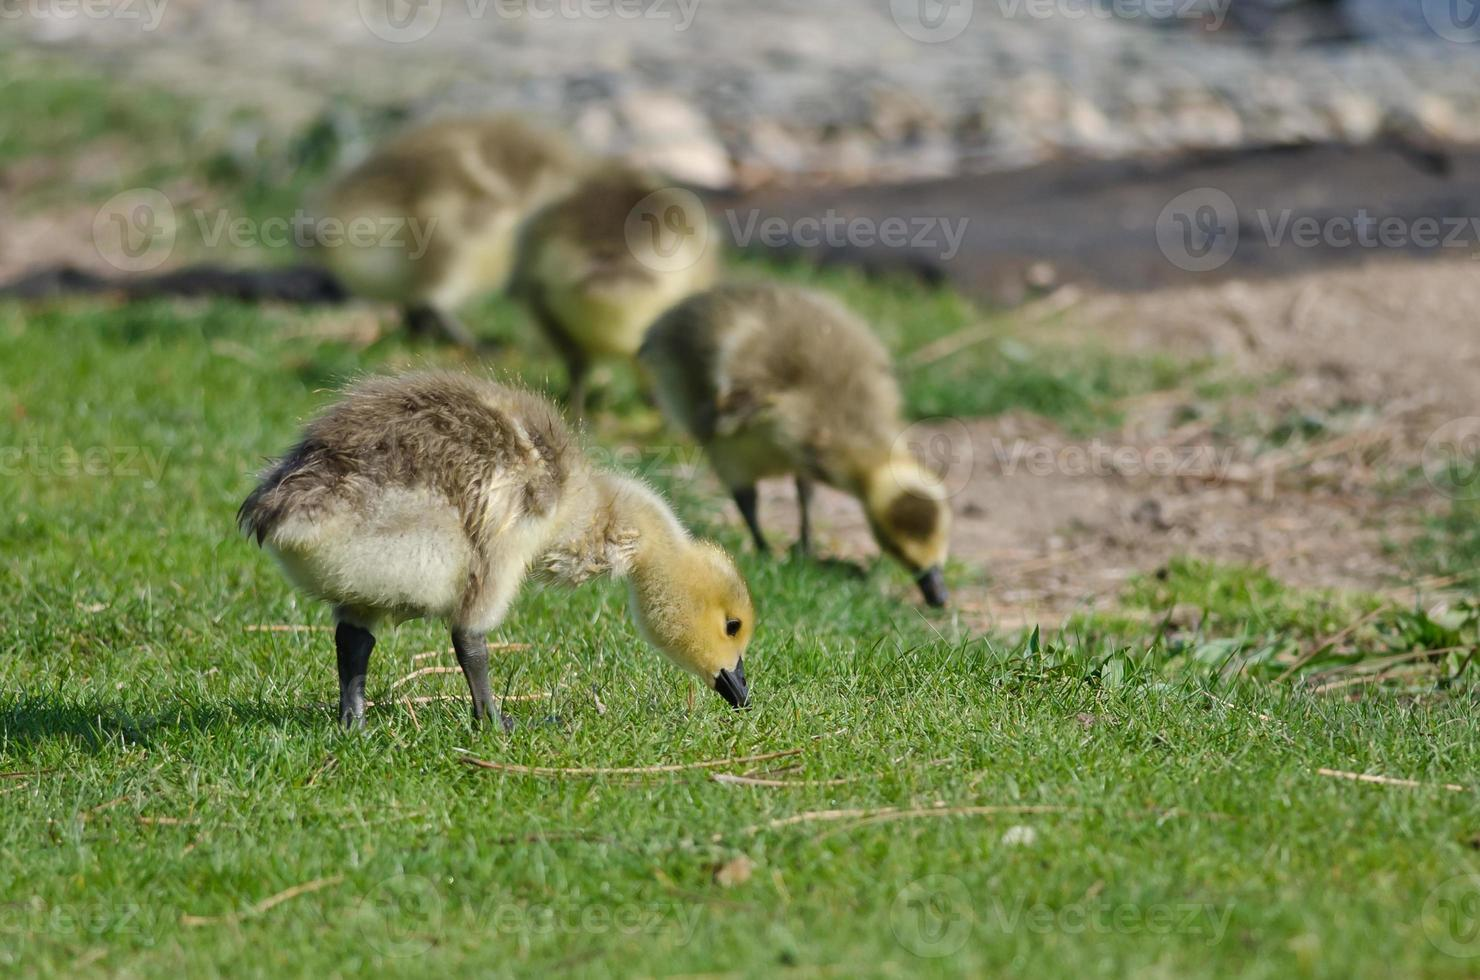 Adorable Little Gosling Looking for Food in the Green Grass photo